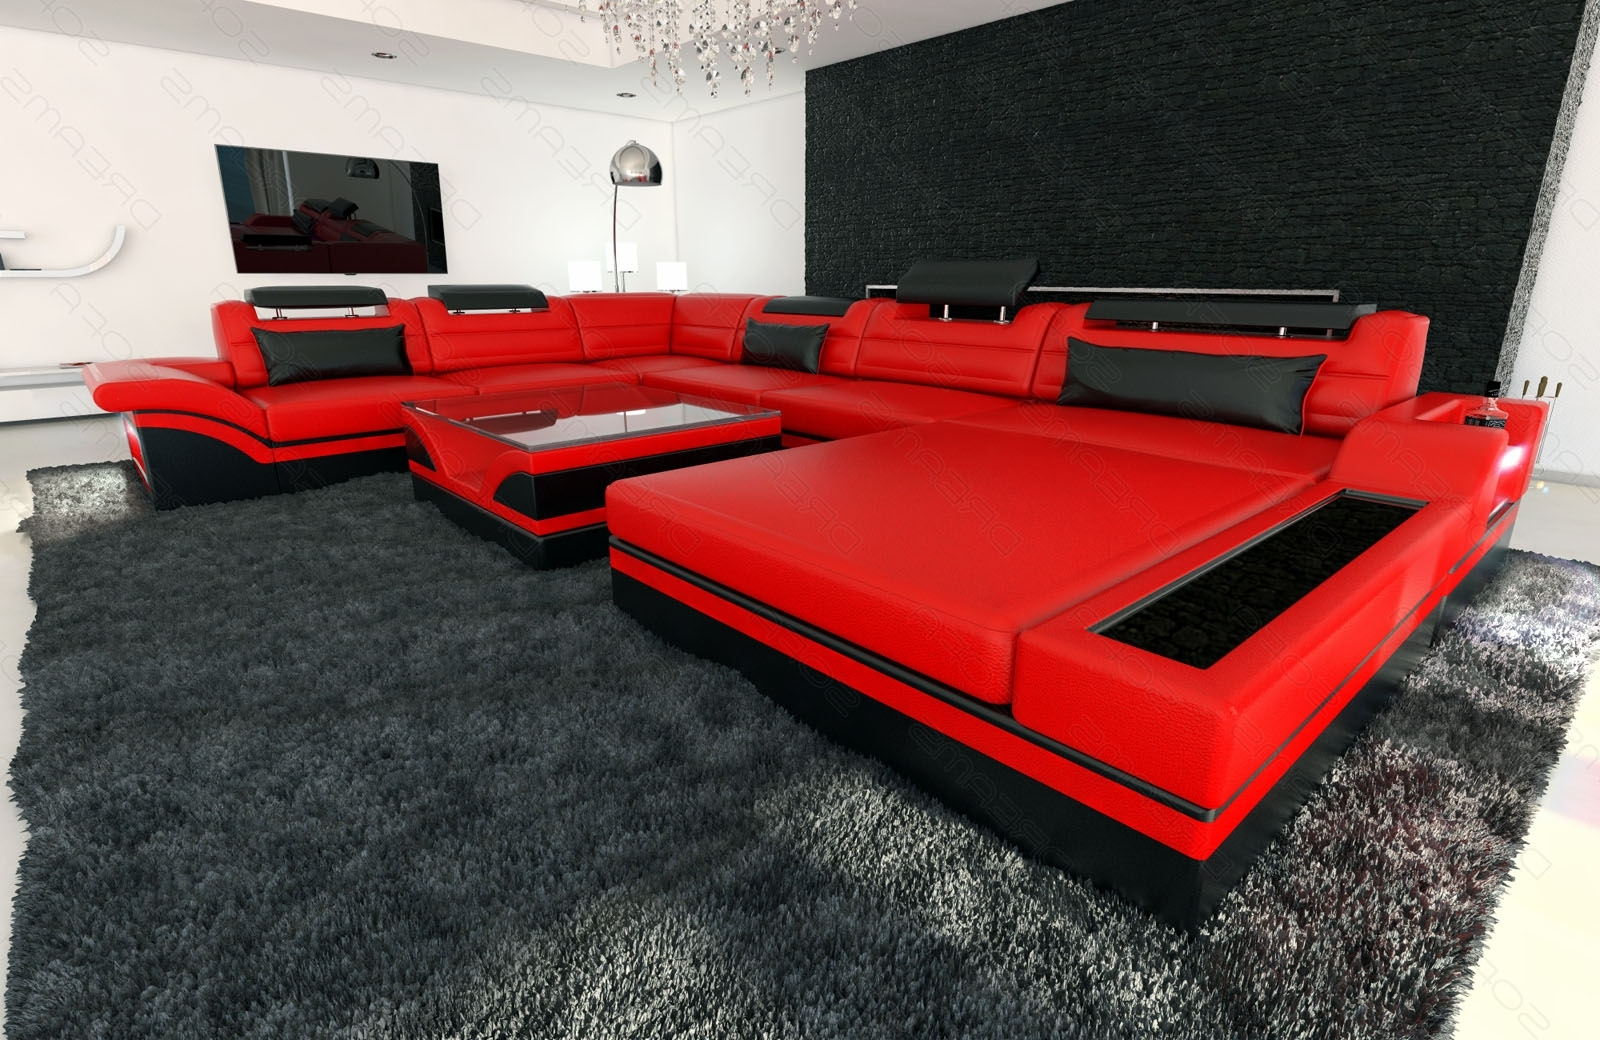 Red Black Sectional Sofas Within Well Known Design Sectional Sofa Mezzo Xxl With Led Lights Red Black (View 3 of 20)